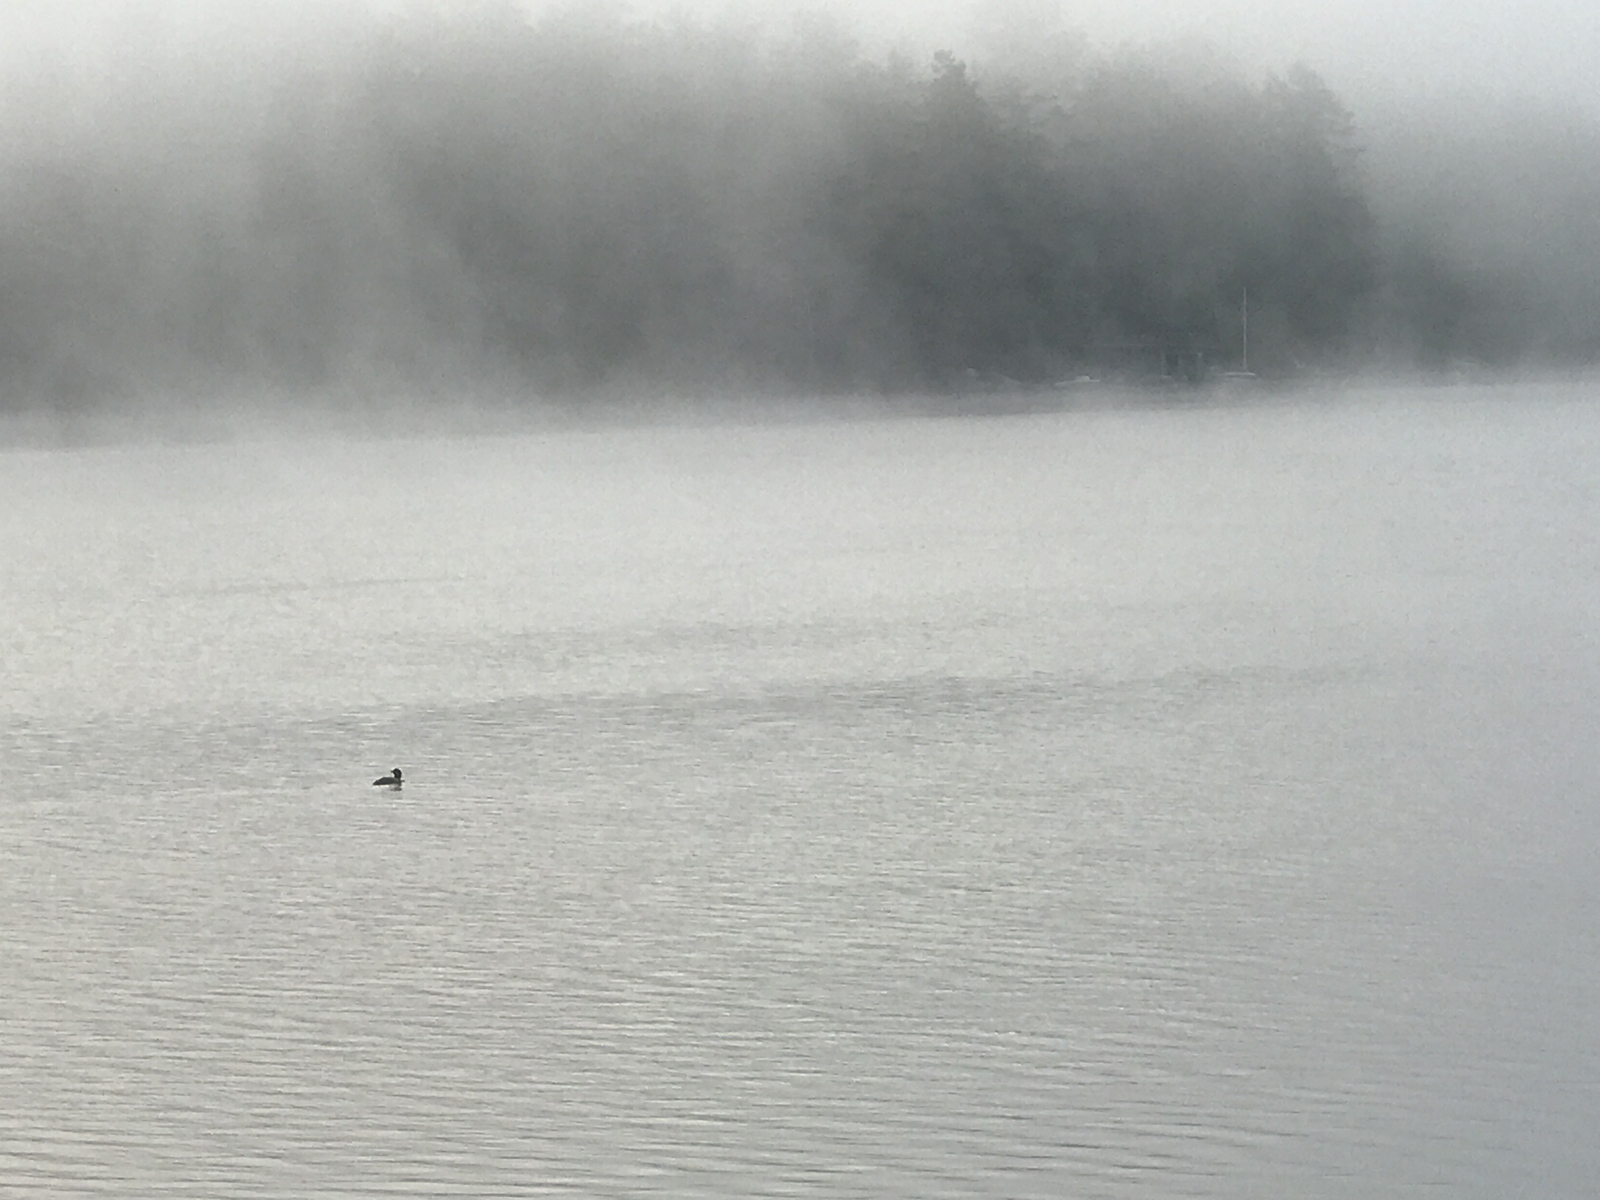 A. Biaggi: Solo Loon on the Lake (Landscape)